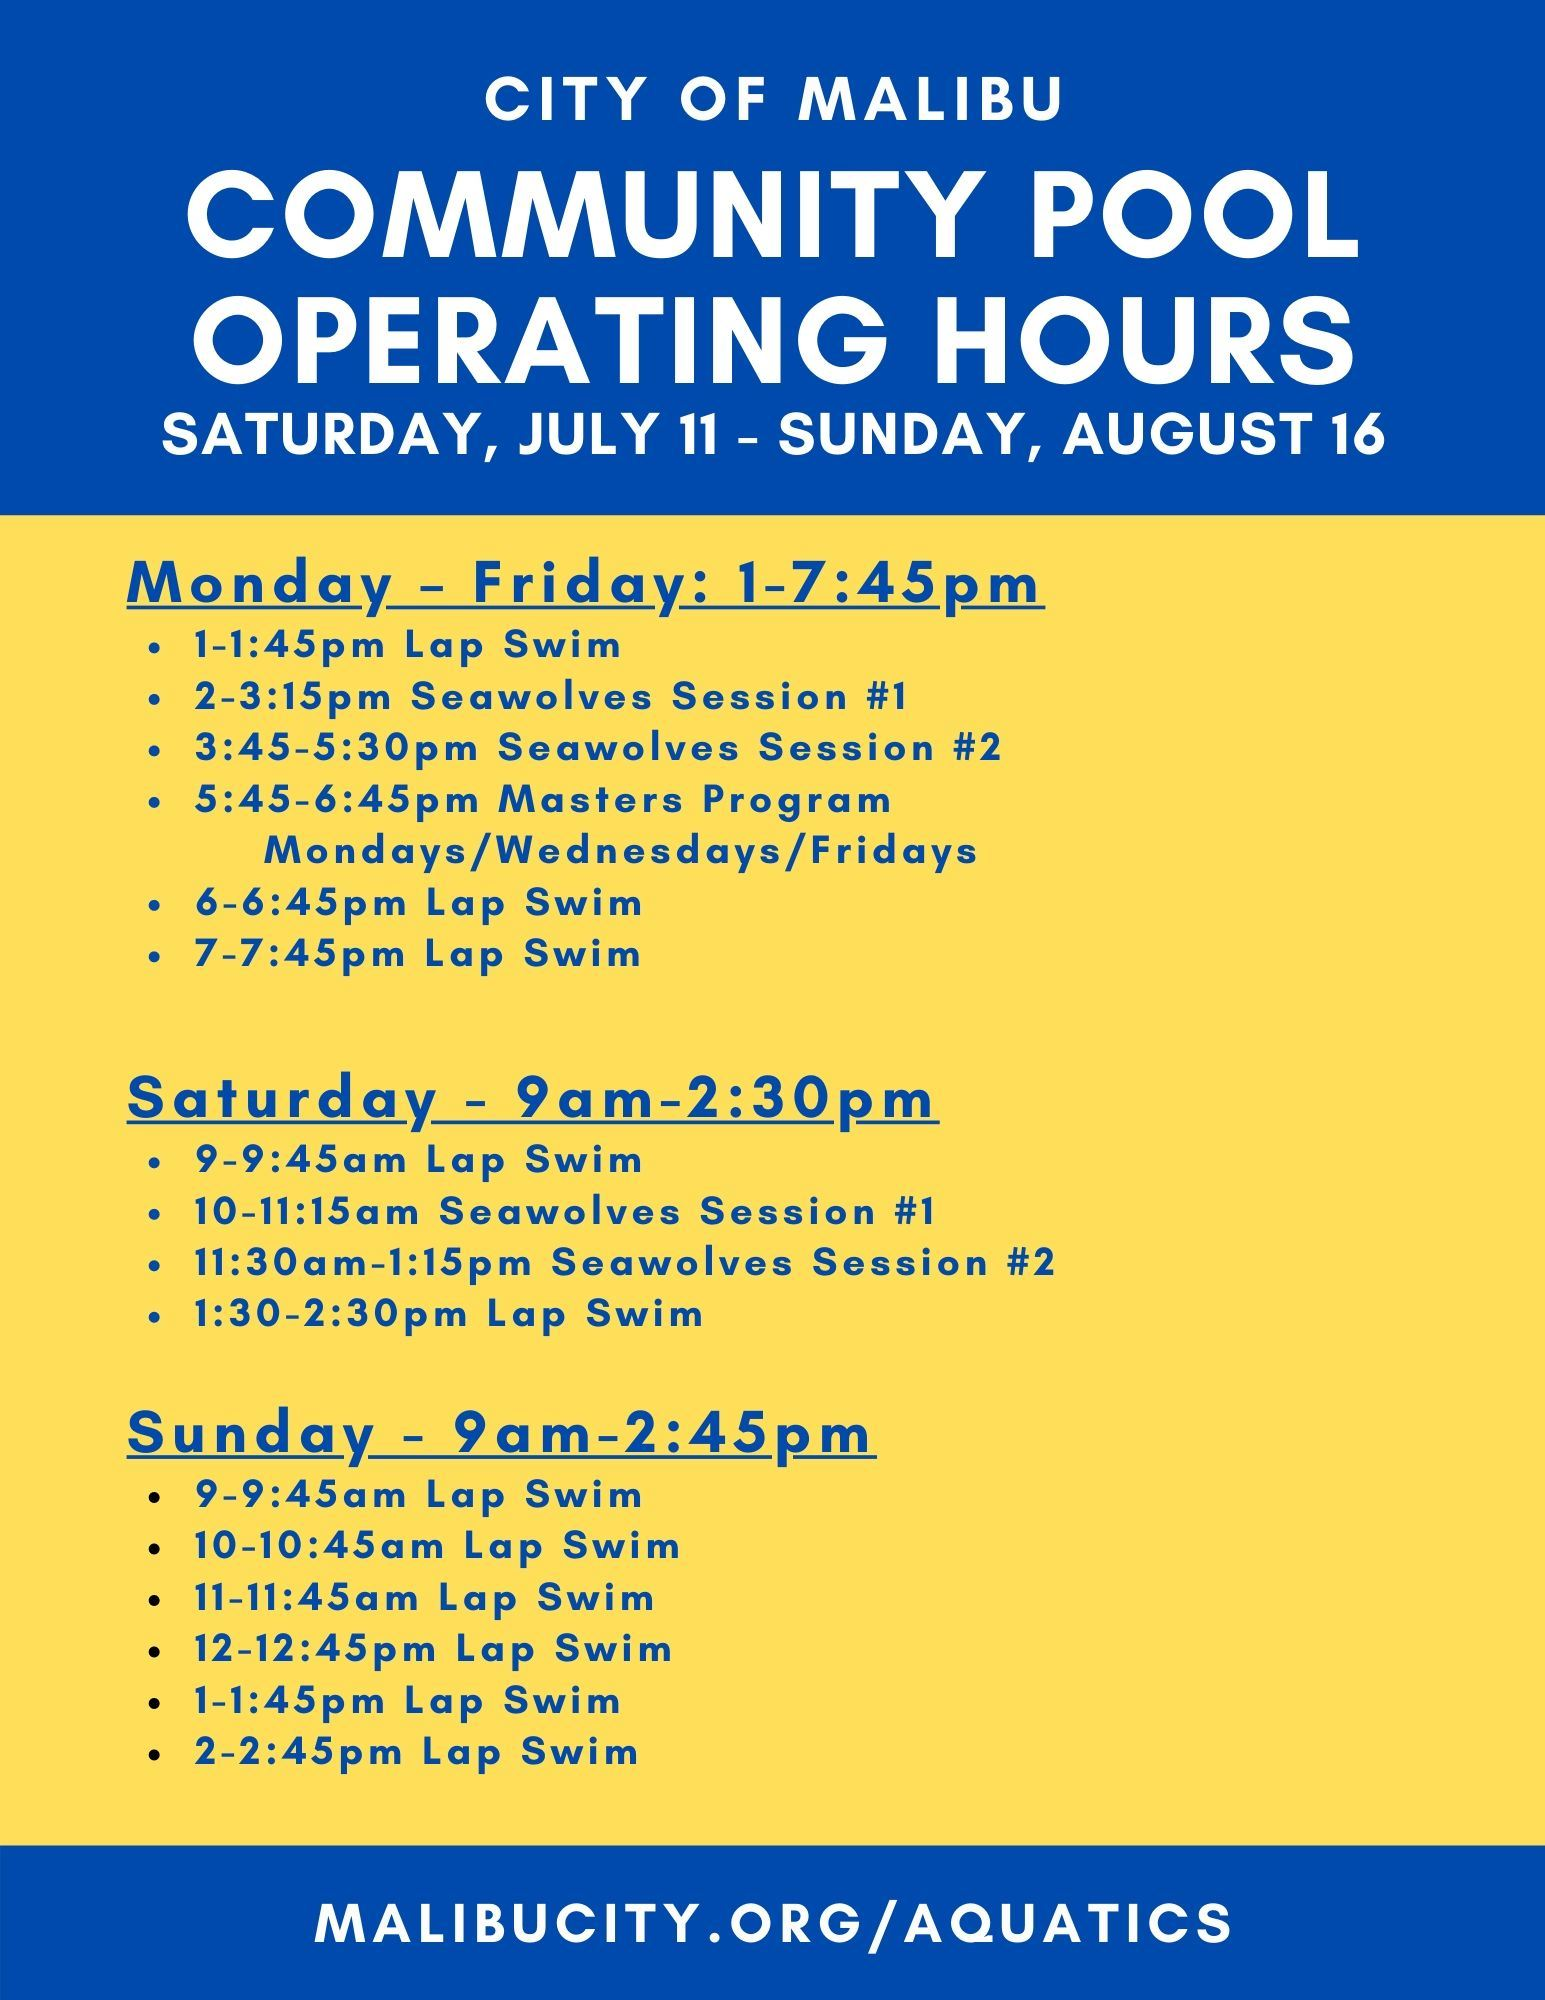 Operating Hours UPDATED